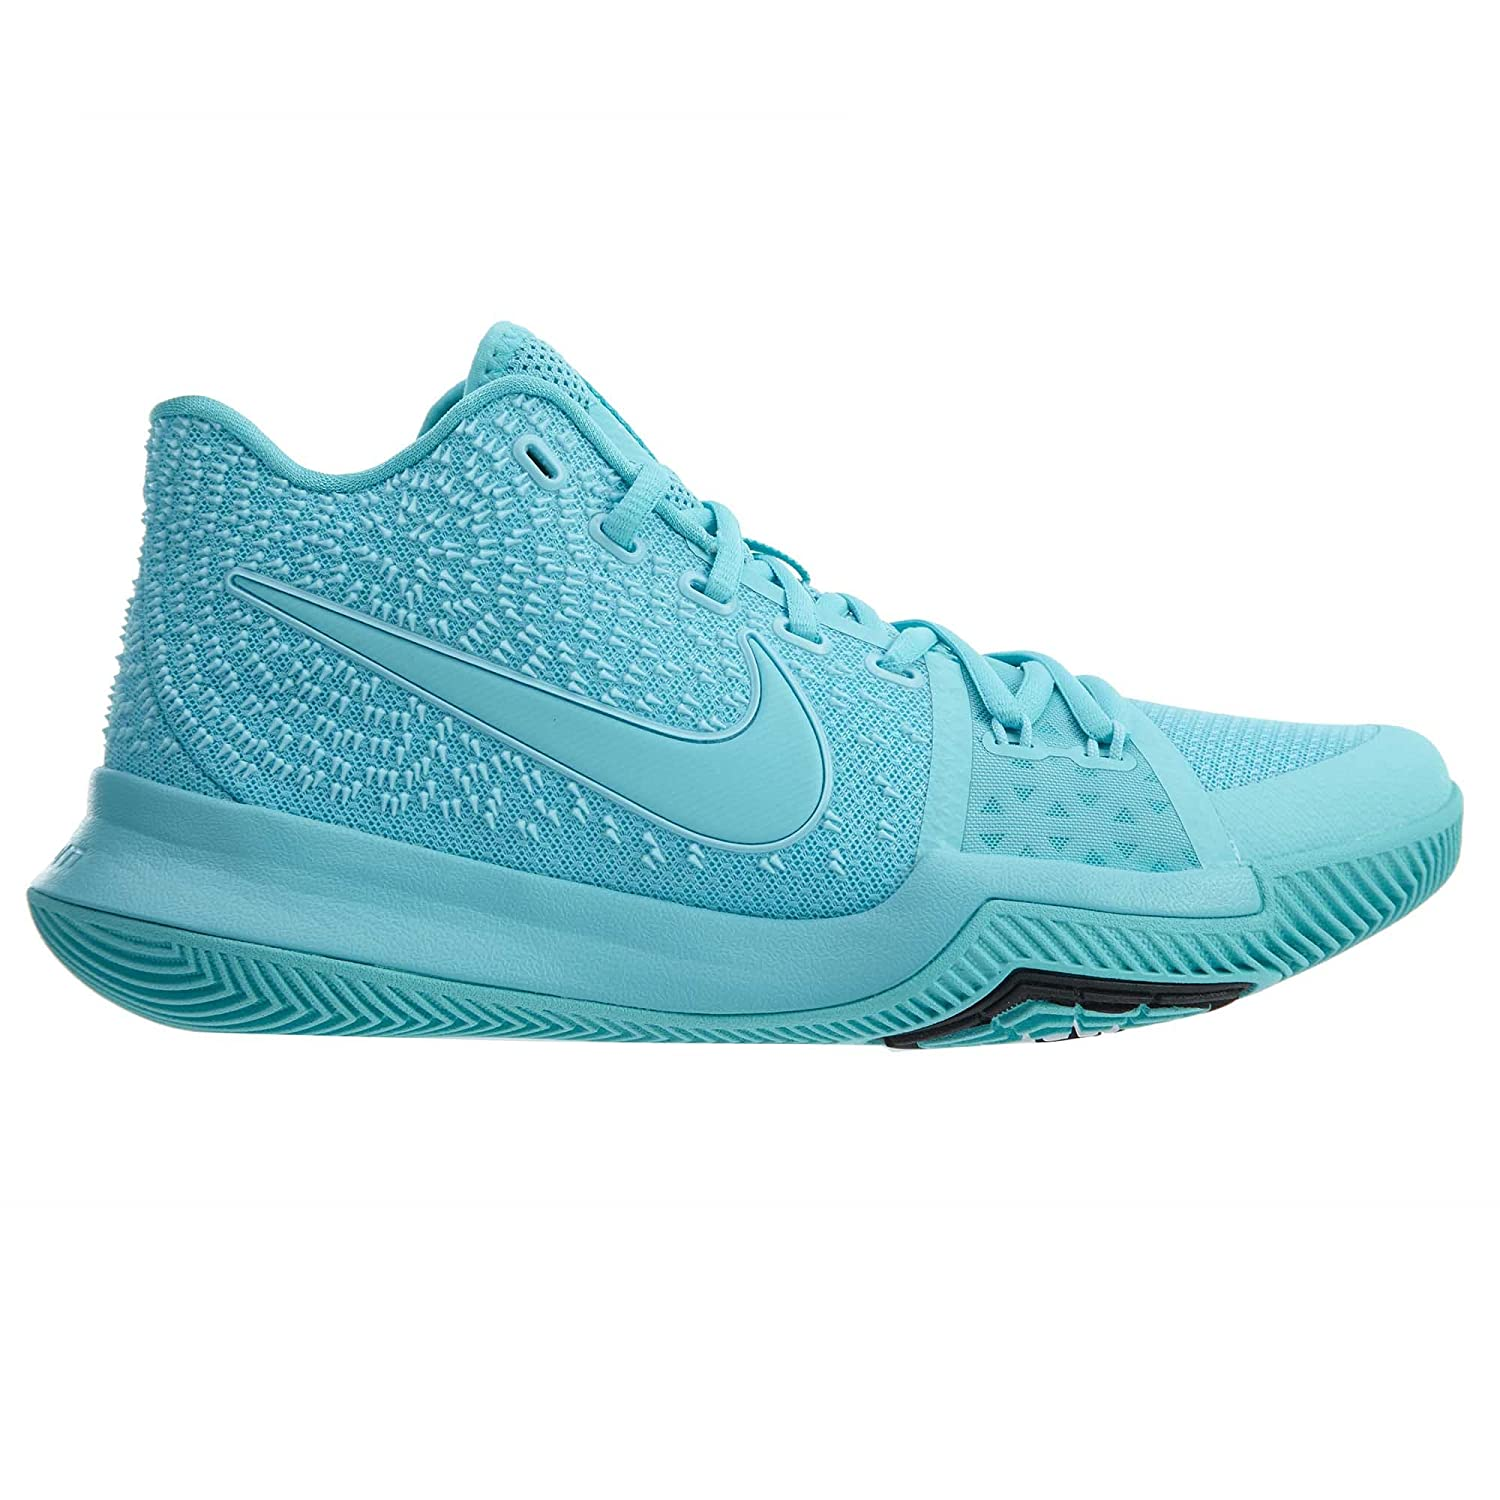 ... Basketball Shoes Black White Silt Red  cheap price 2b791 54a22  Amazon.com NIKE Kyrie 3 Mens Style 852395-401 Size ... 5466010e5